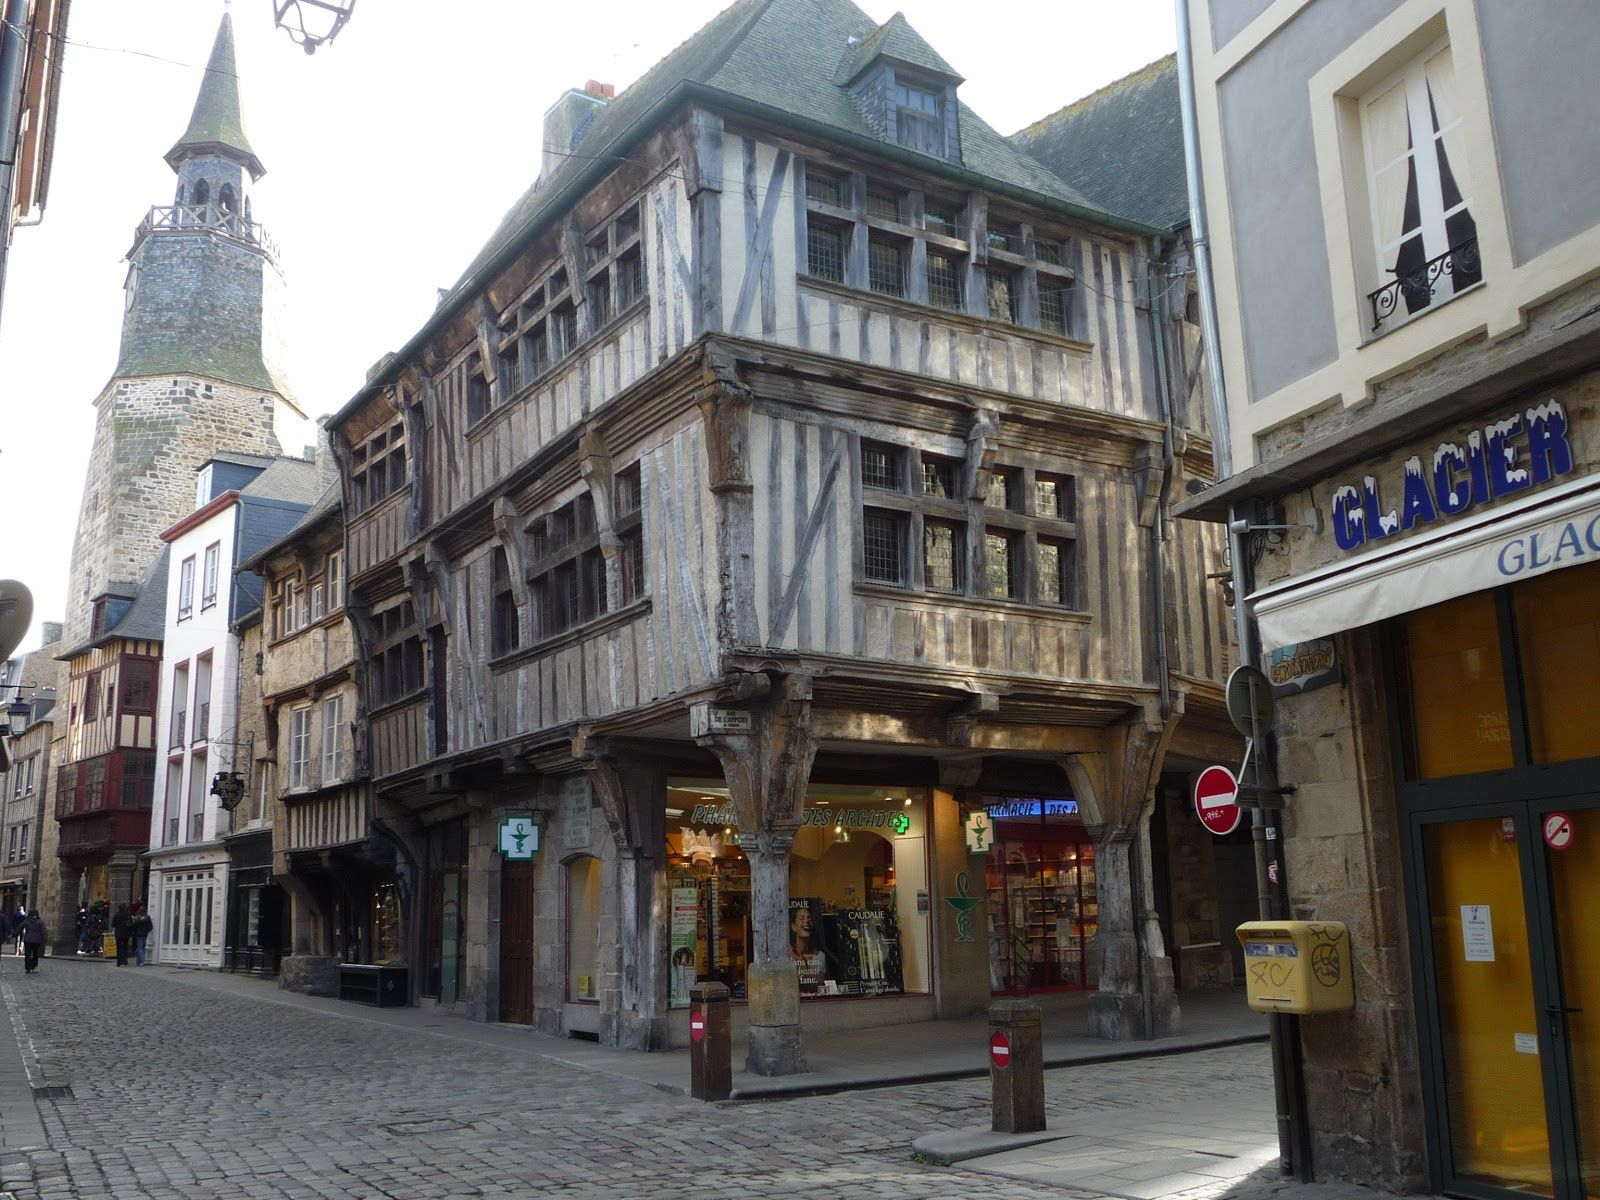 Dinan France is located near the famous and beautiful city of St